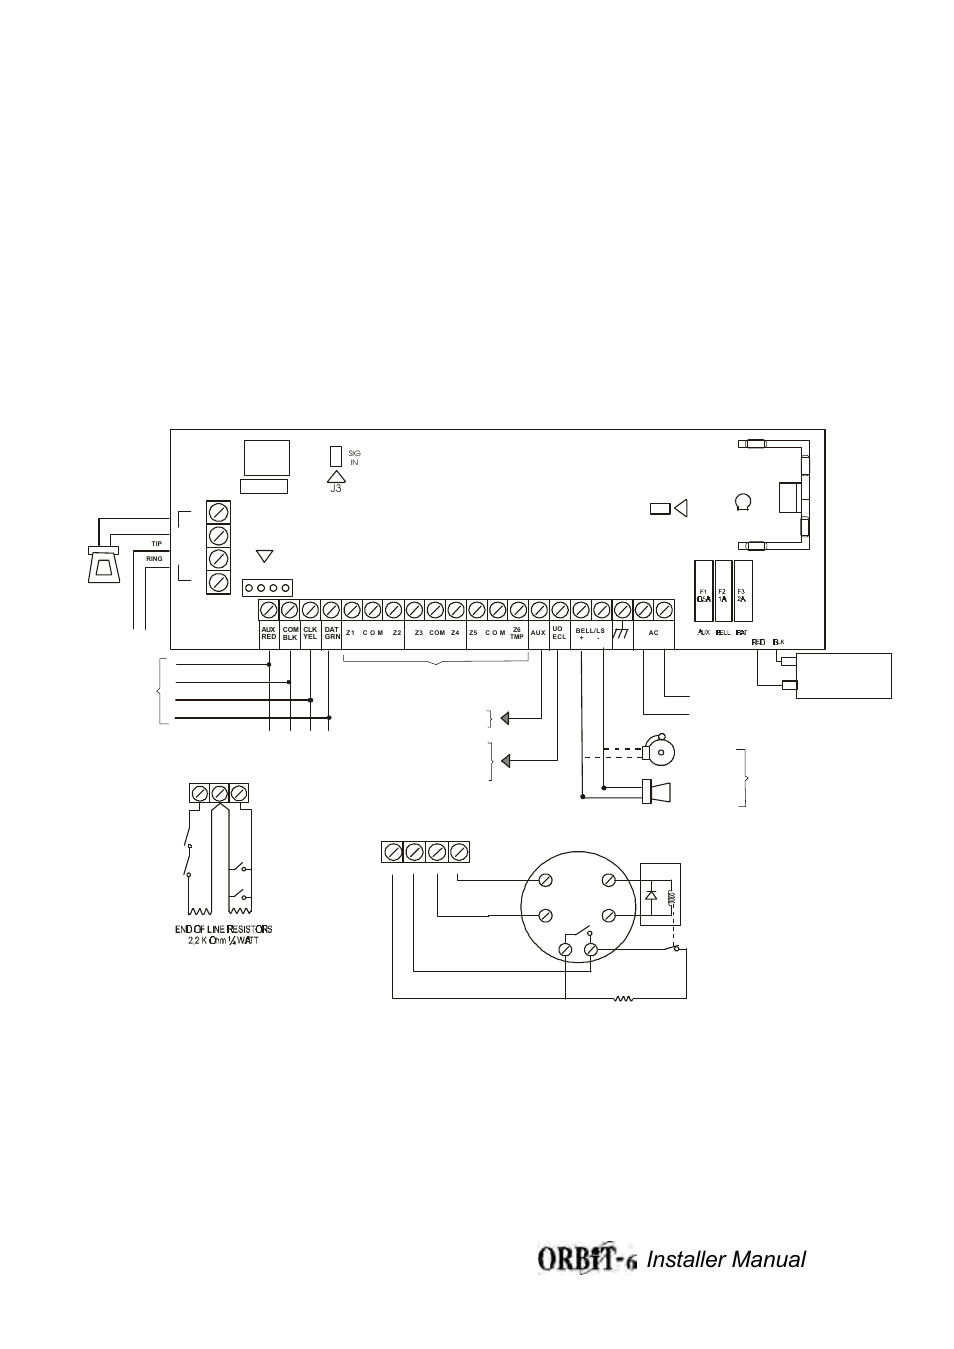 medium resolution of orbit 6 wiring diagram figure 1a installer manual 32 orbit manufacturing rokonet orbit